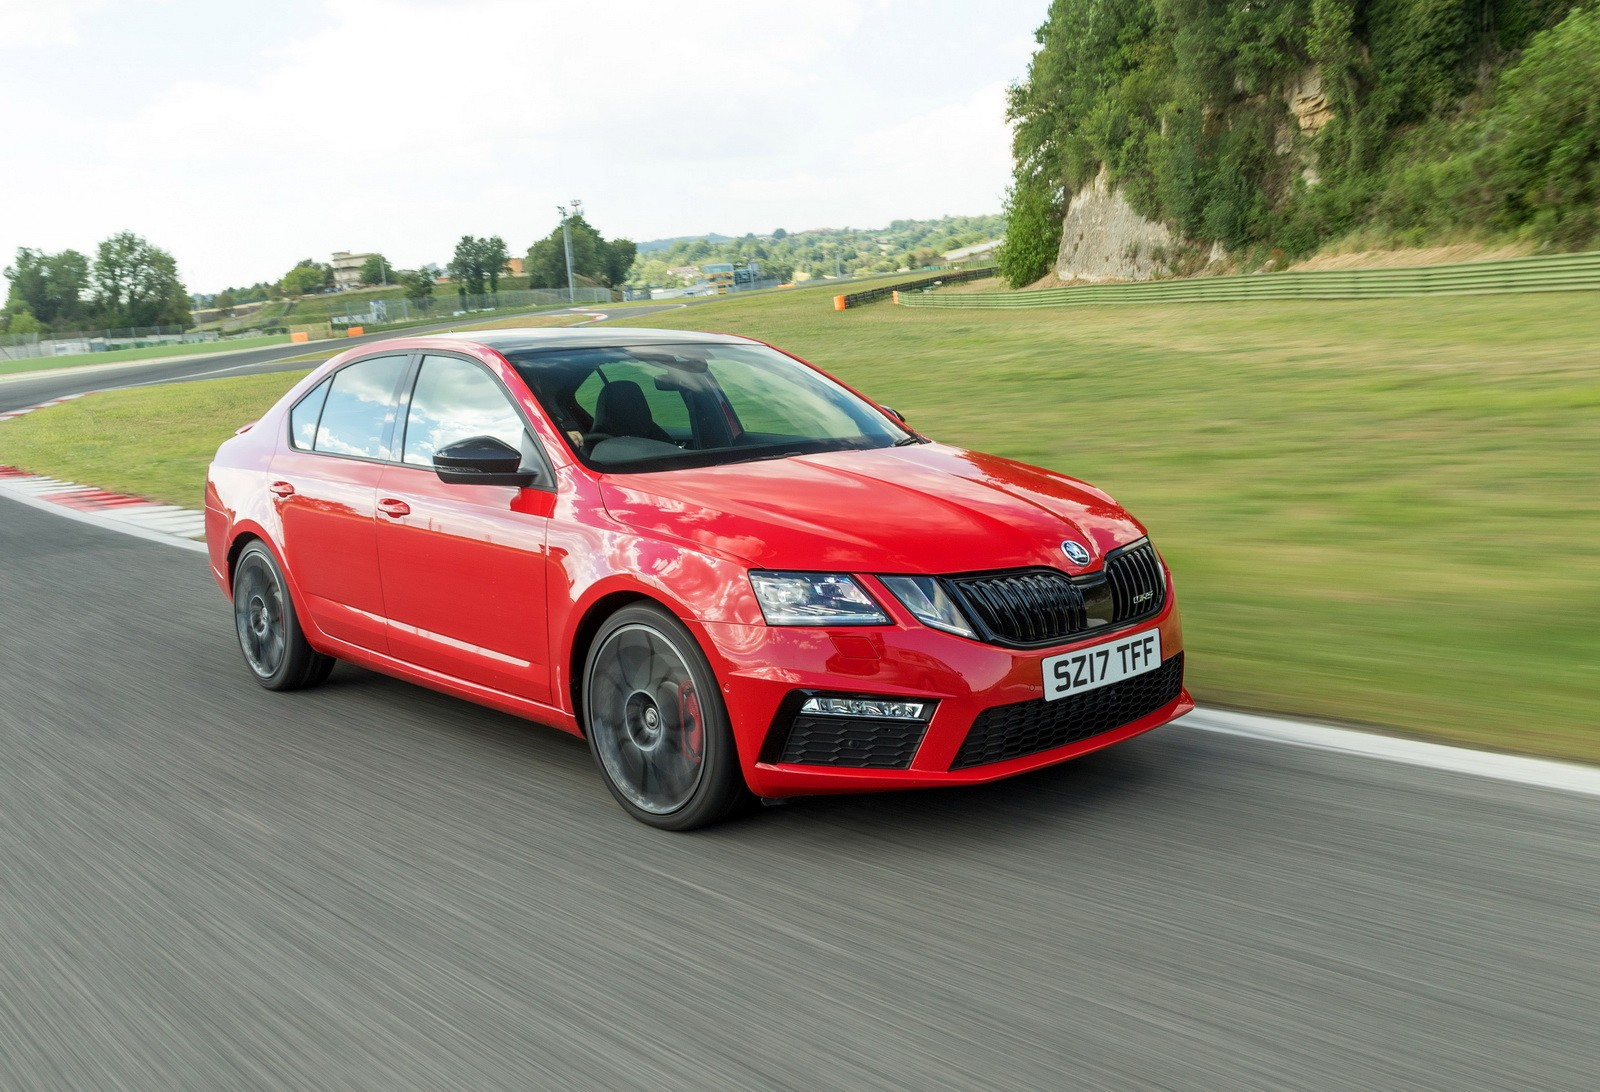 2018 skoda octavia vrs 245 uk pricing and details announced autoevolution. Black Bedroom Furniture Sets. Home Design Ideas